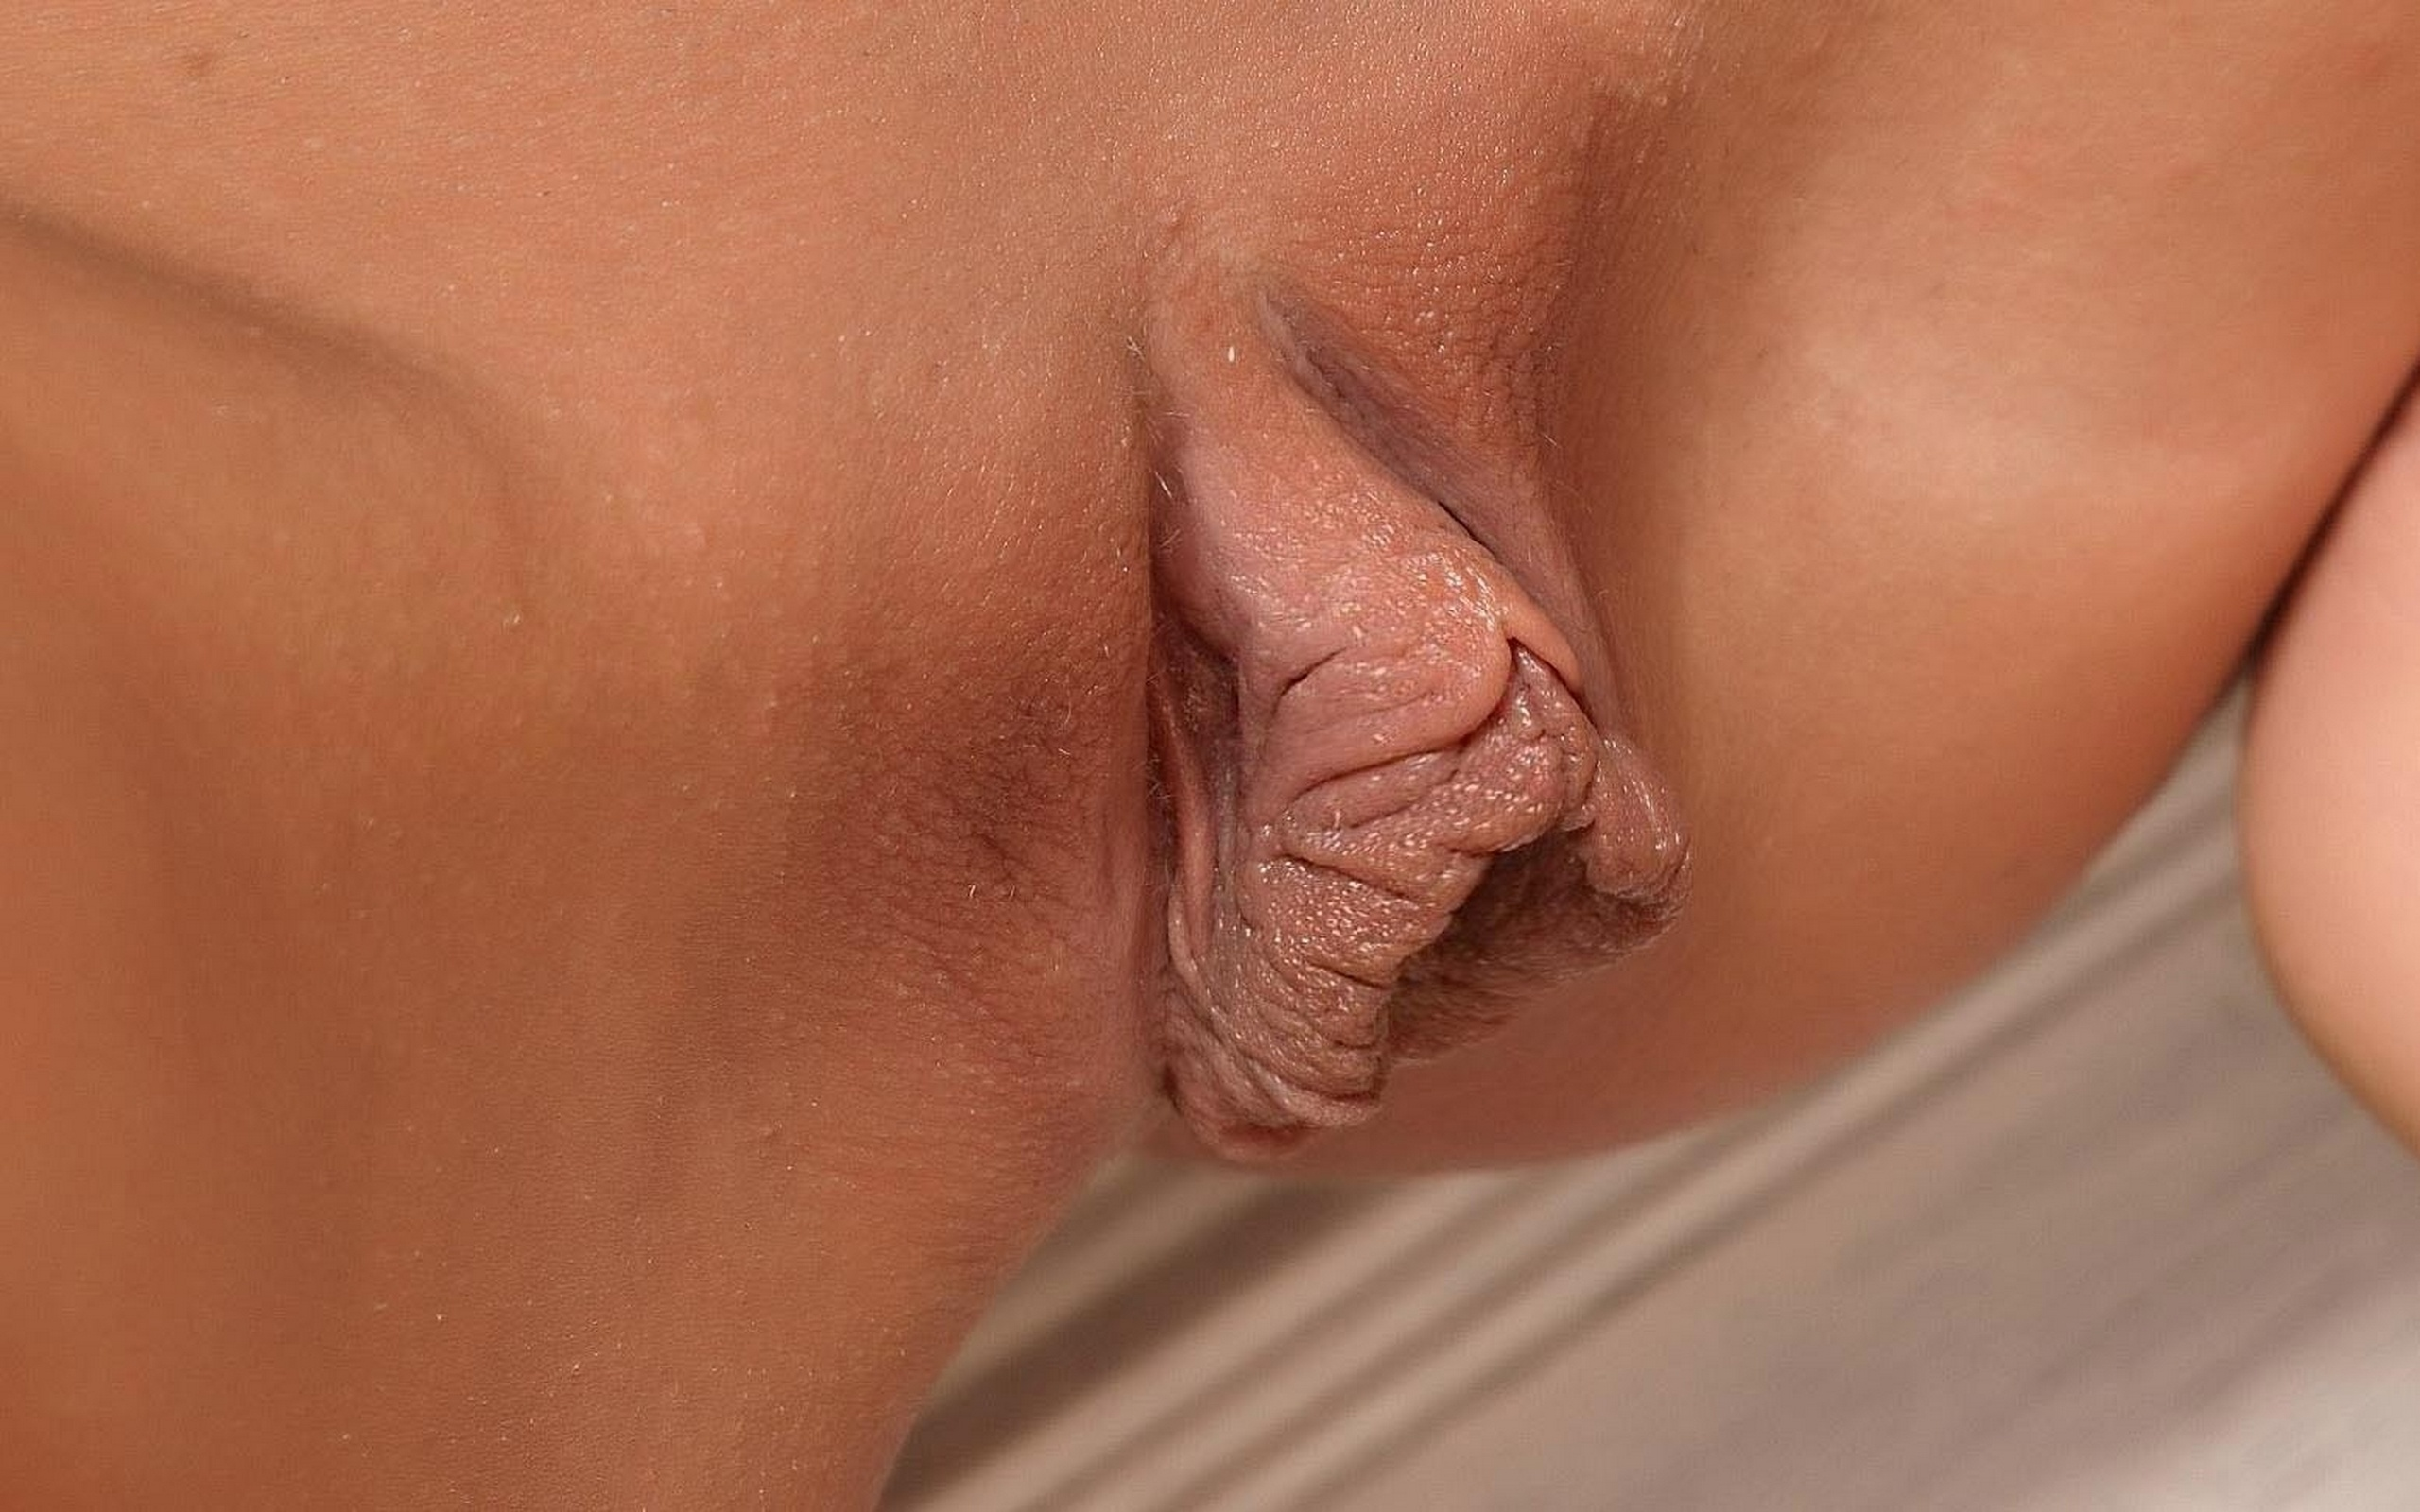 Teens upclose labia fingering